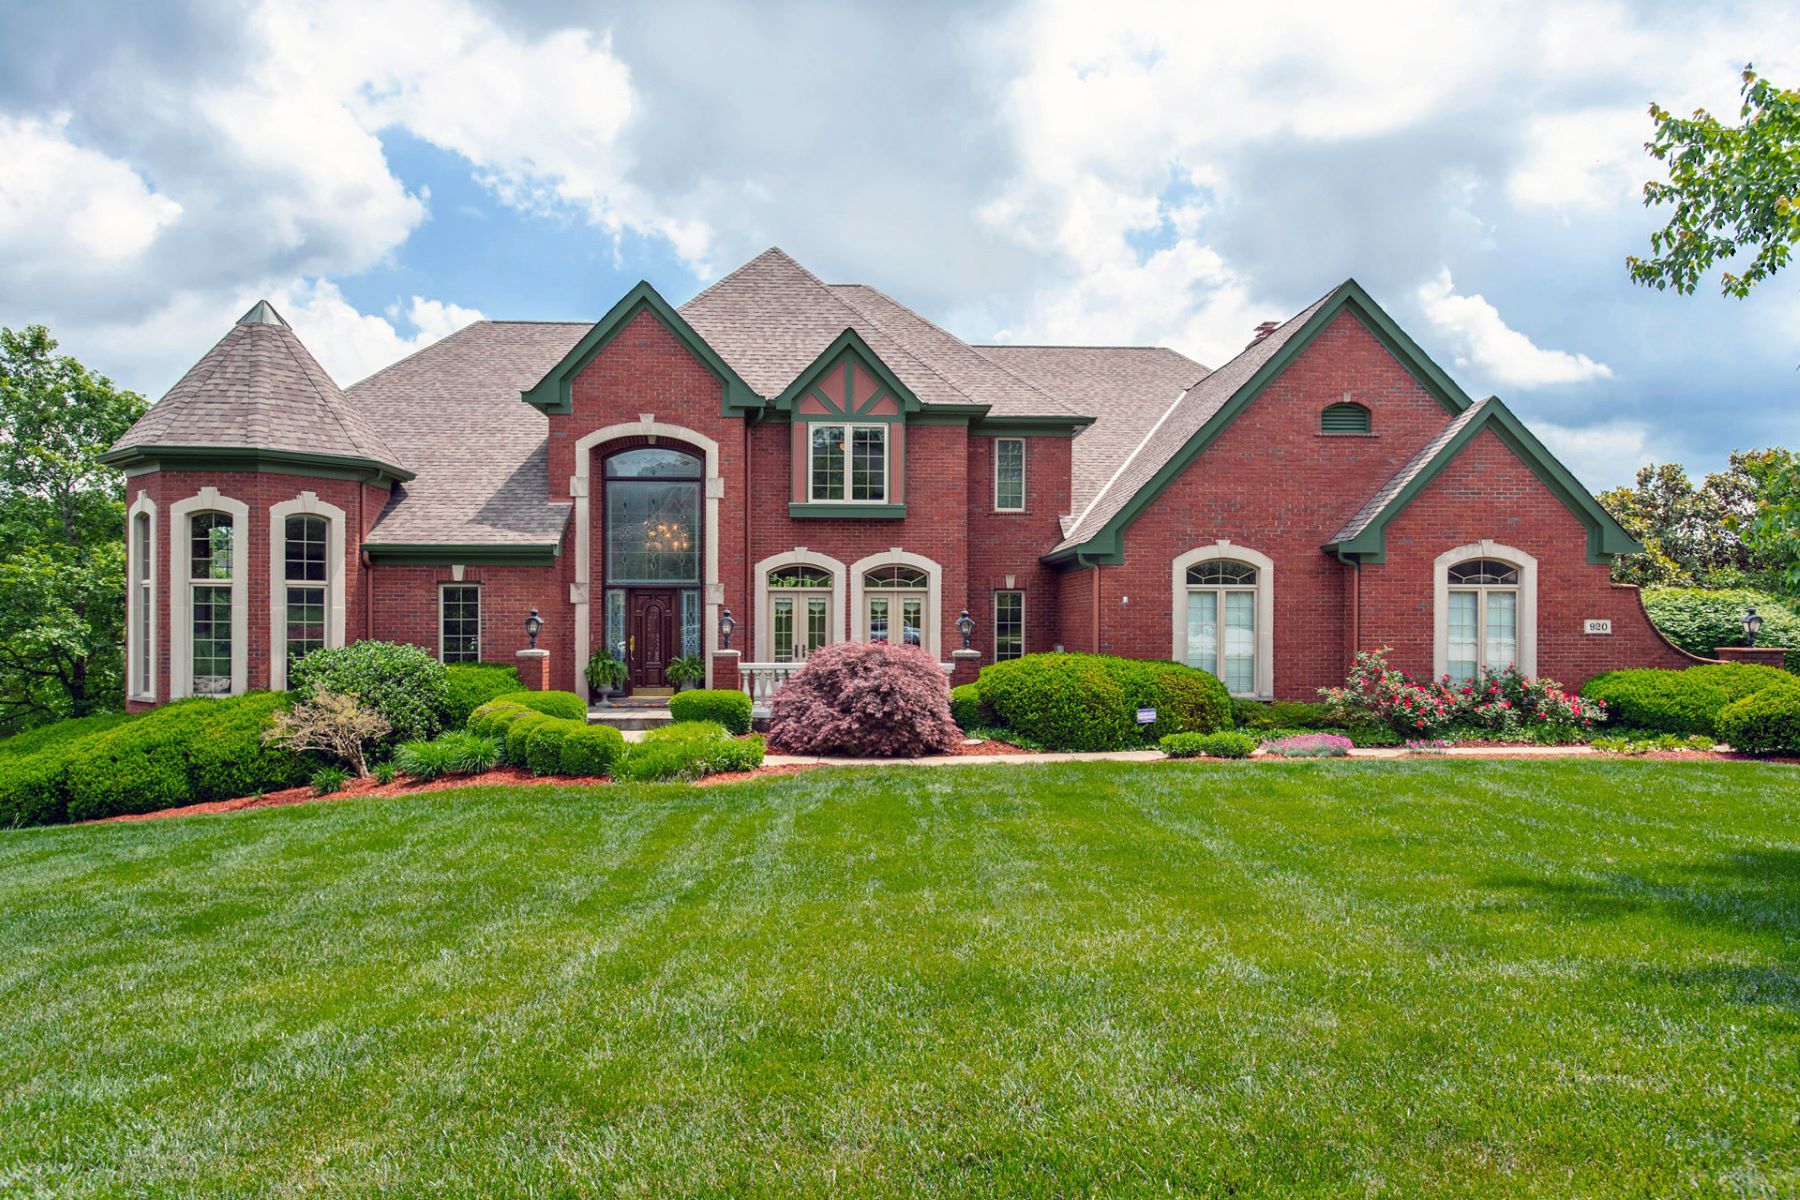 Single Family Homes for Sale at 920 Squire Oaks Drive Villa Hills, Kentucky 41017 United States